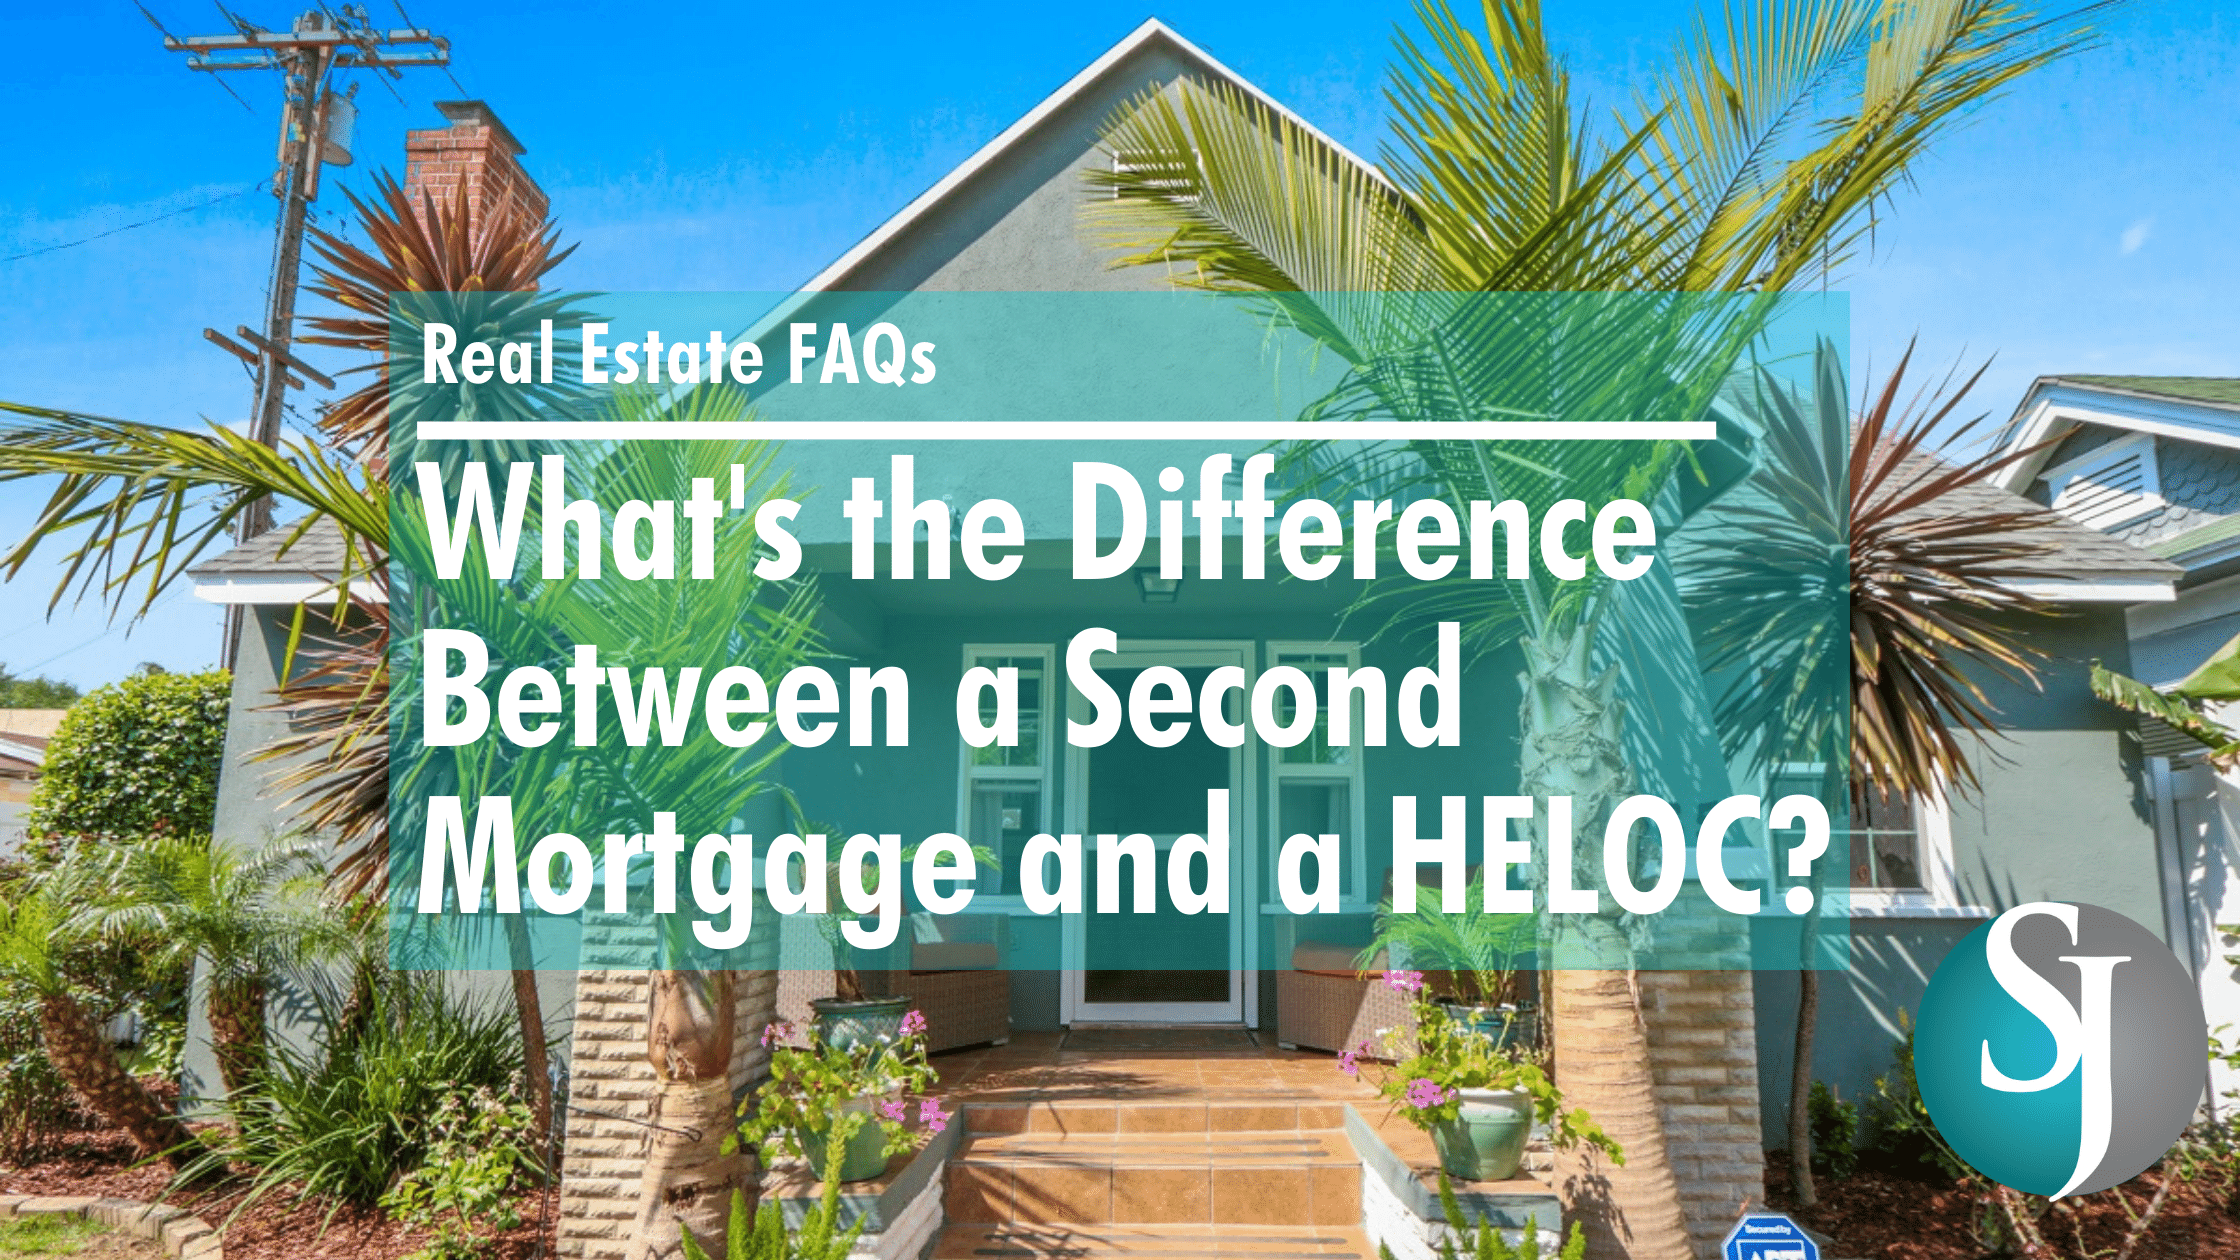 Real Estate FAQs - Second Mortgage vs HELOC - YouTube